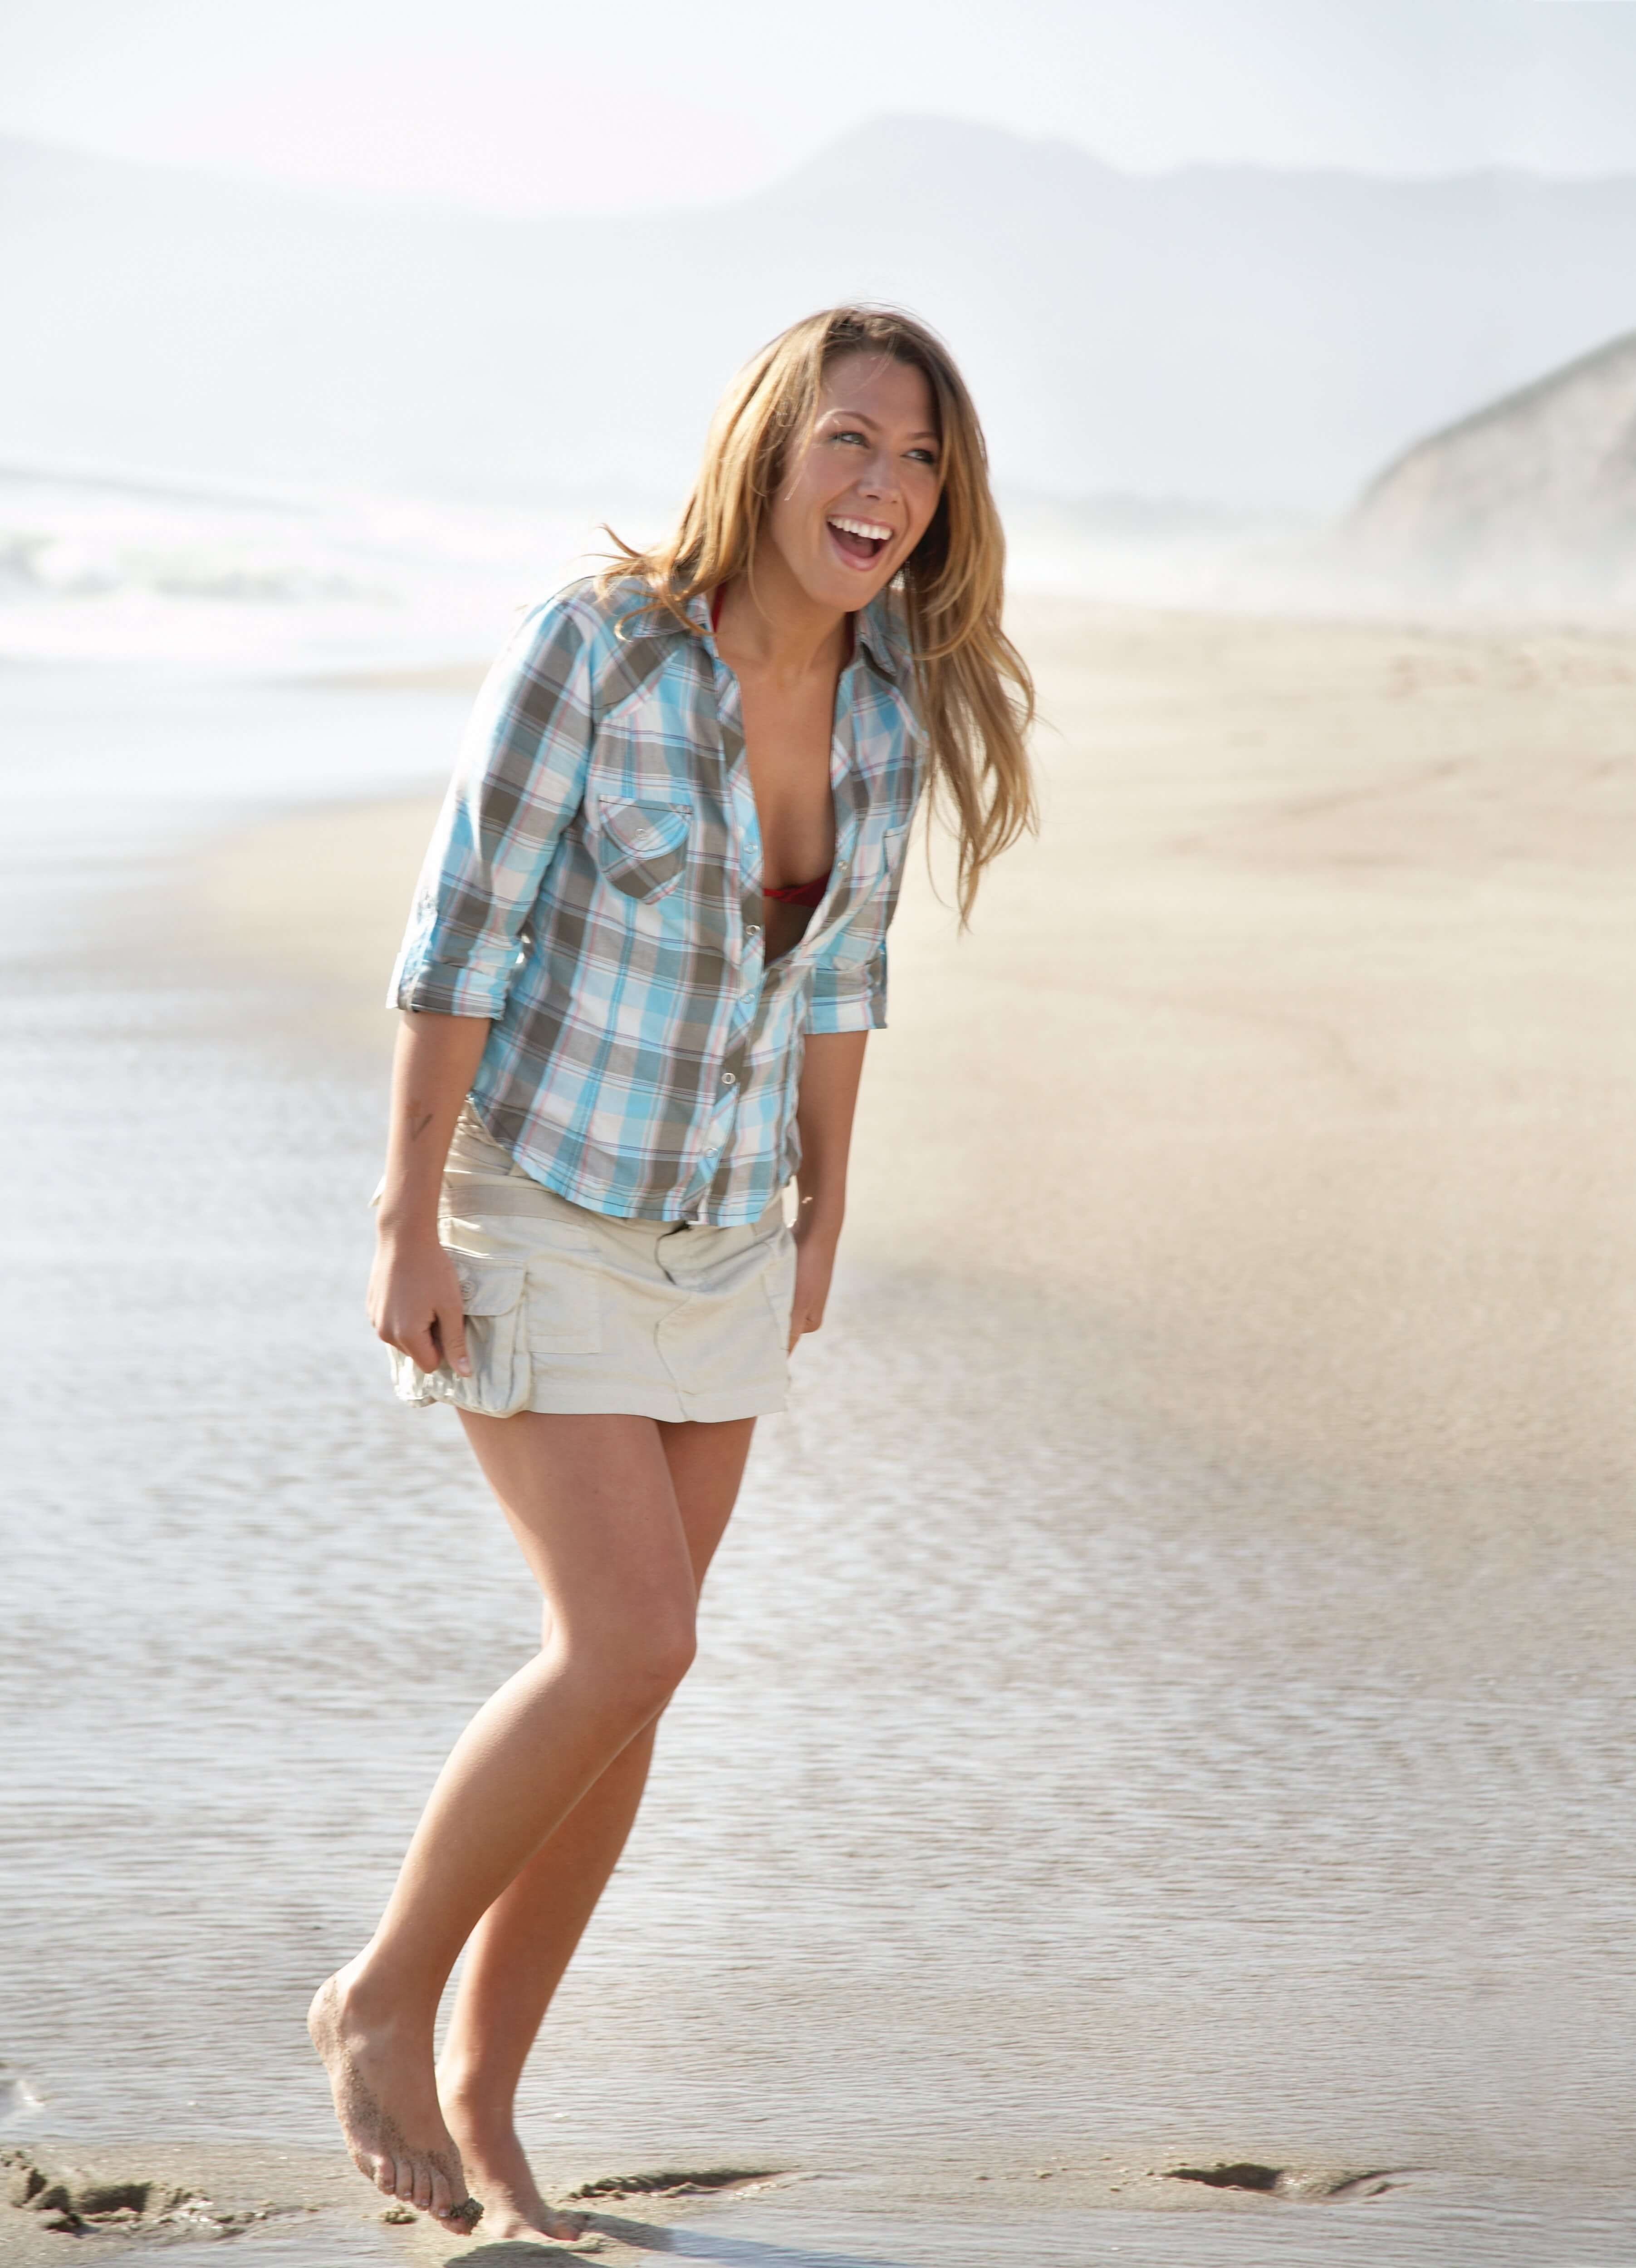 Colbie caillat hintern nackt, Tata young topless